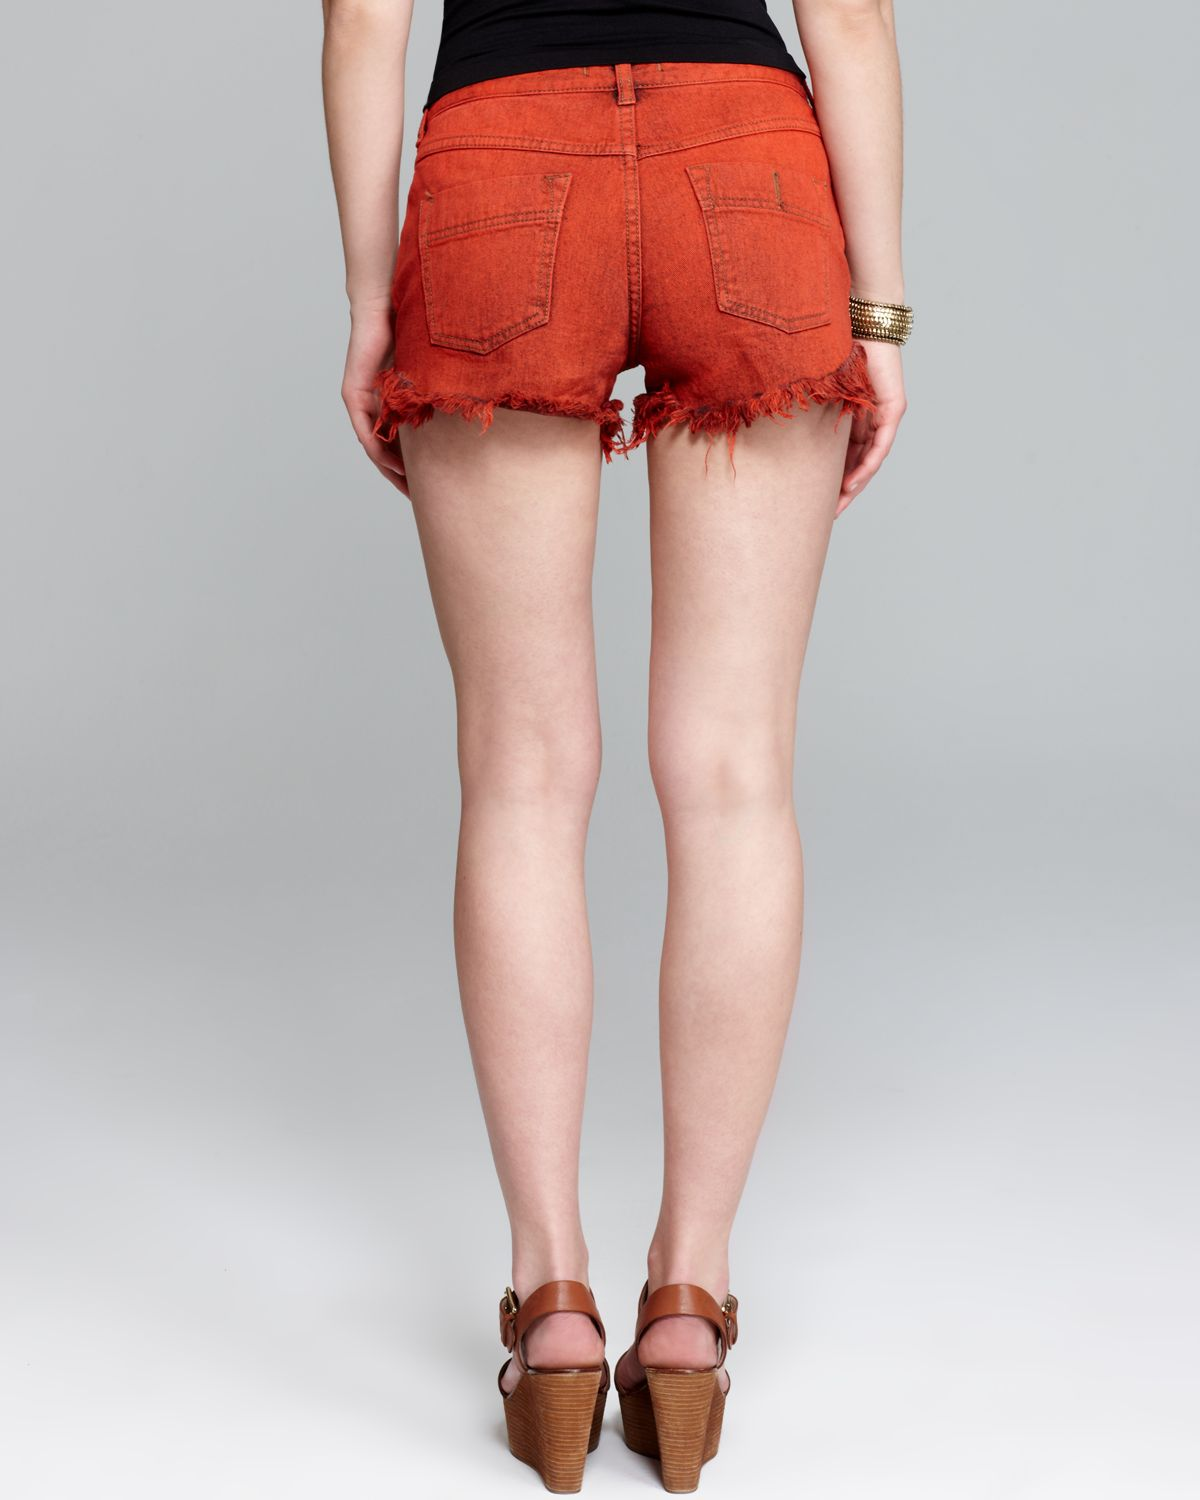 Free people Shorts Rugged Ripped Denim Cutoff in Sunrise Red in ...